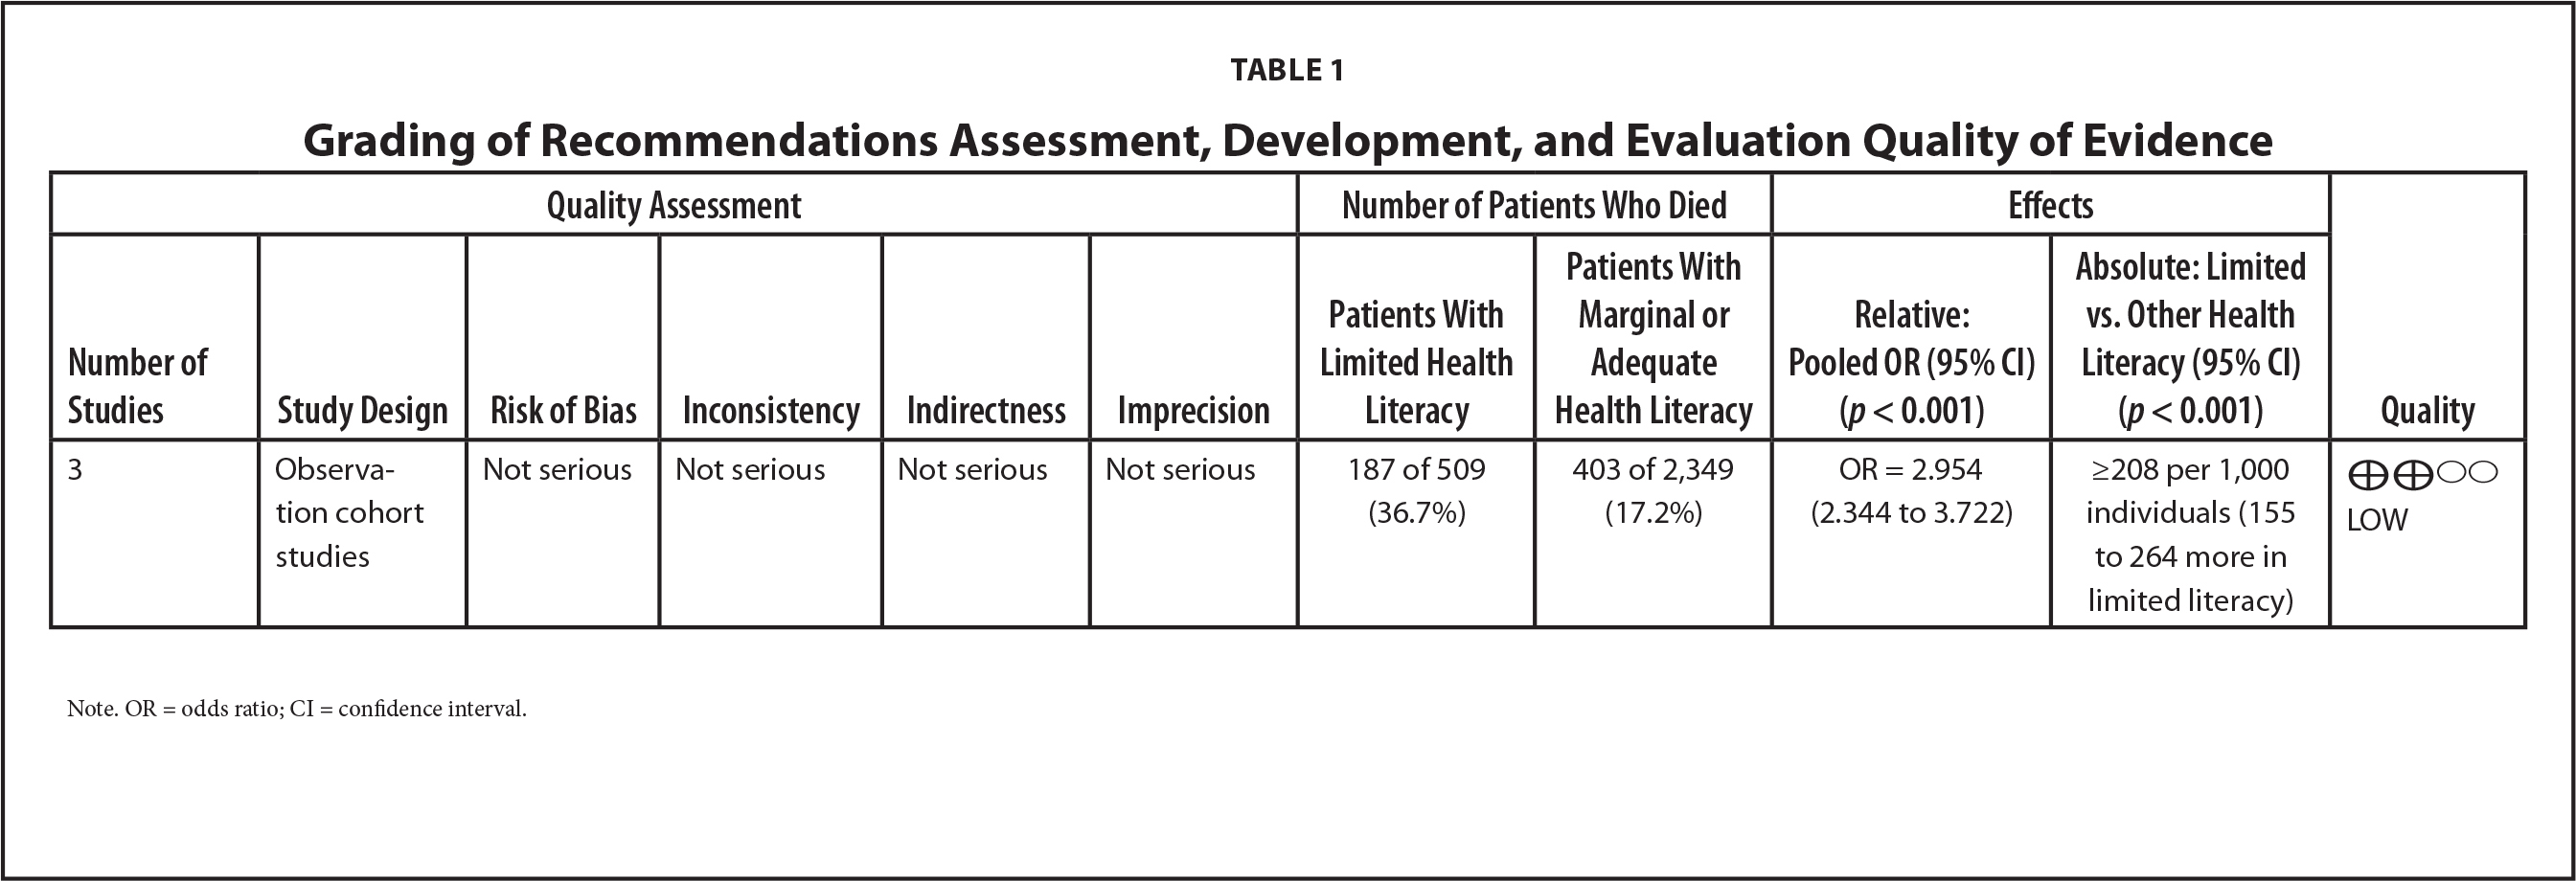 Grading of Recommendations Assessment, Development, and Evaluation Quality of Evidence